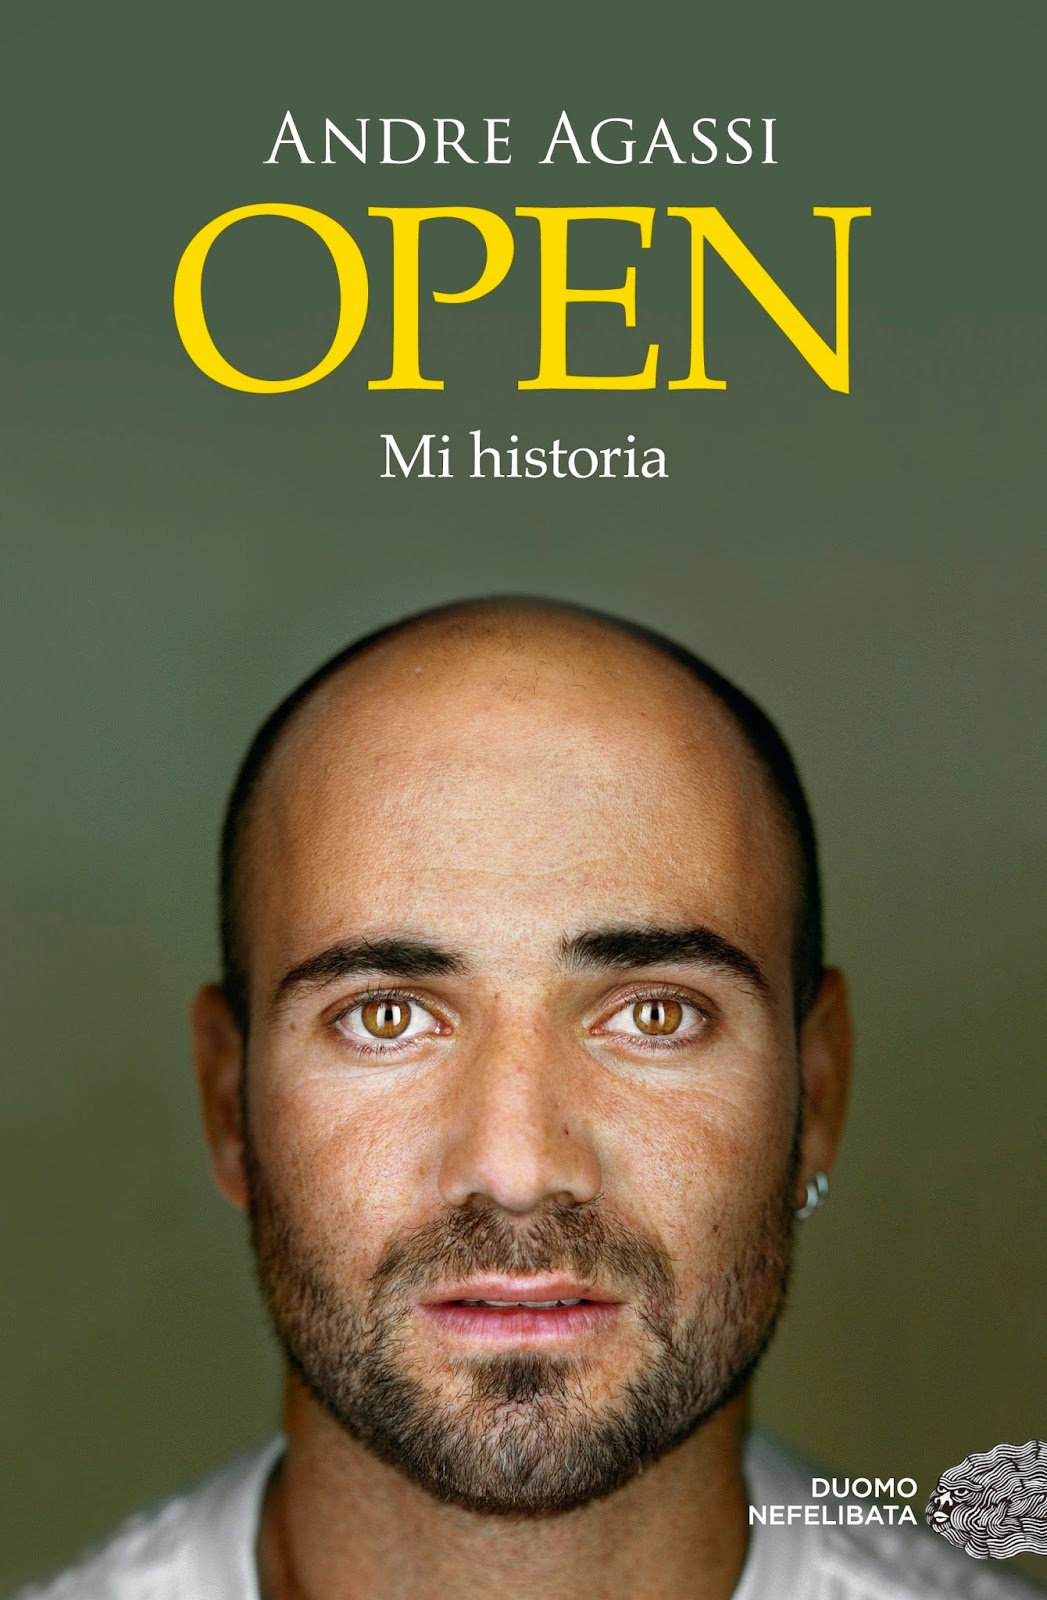 Open. Andre Agassi